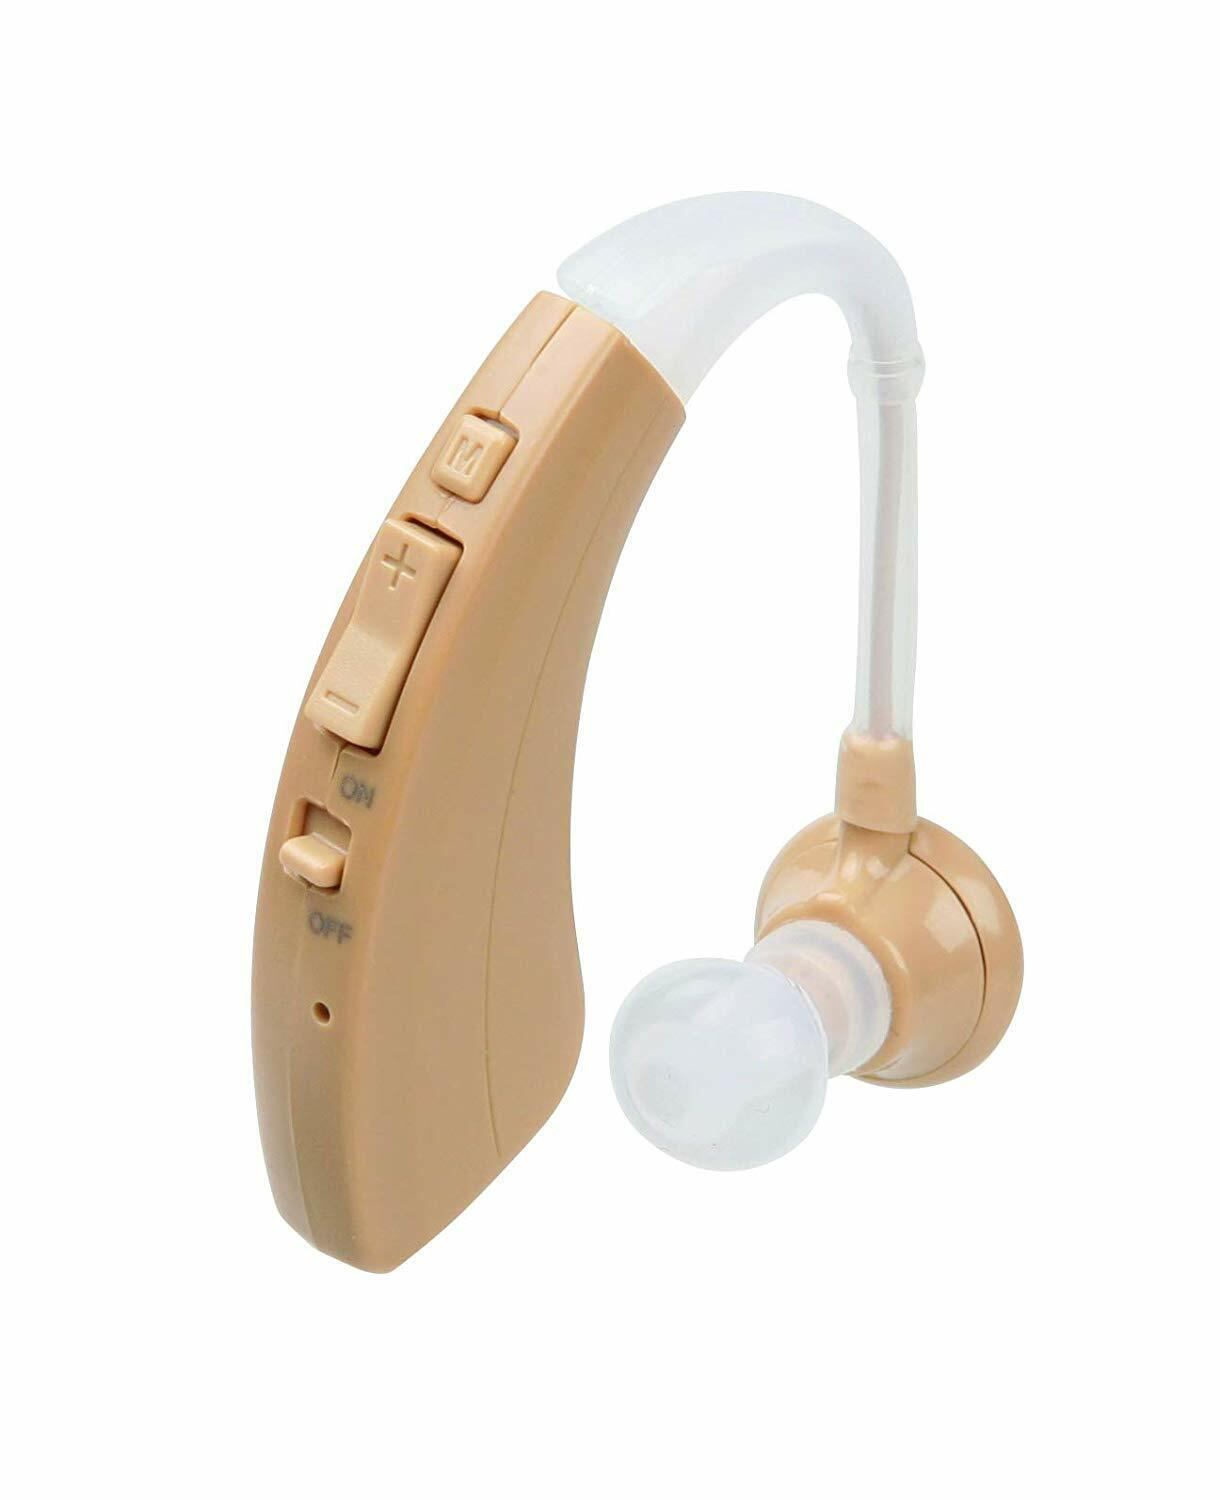 CLEARON Rechargable Digital Hearing Aid Amplifier CL 220T 50